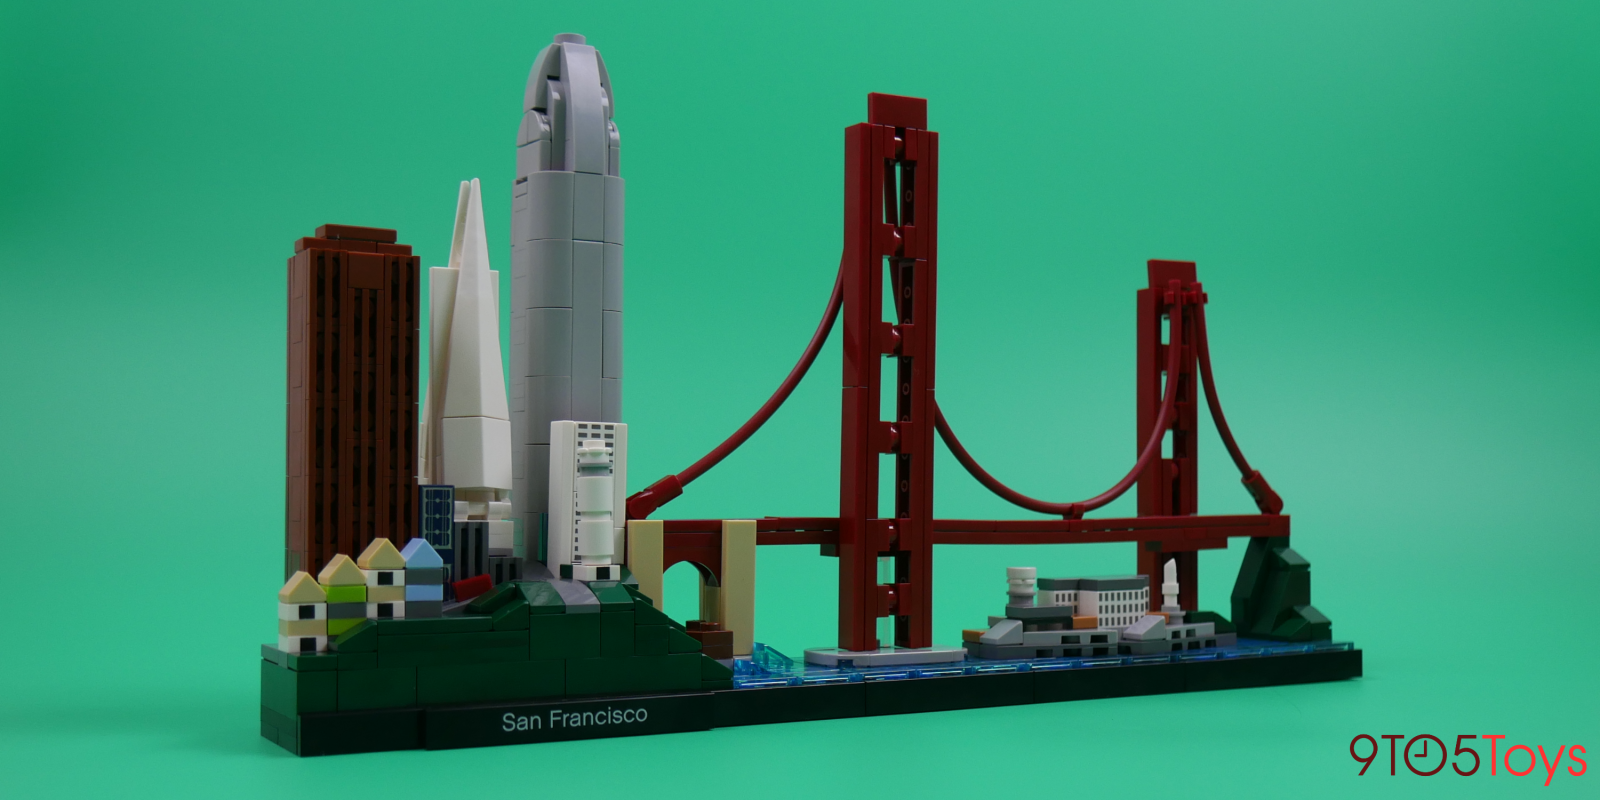 Hands-on: LEGO's San Francisco Skyline Architecture set is filled with masterful parts usage